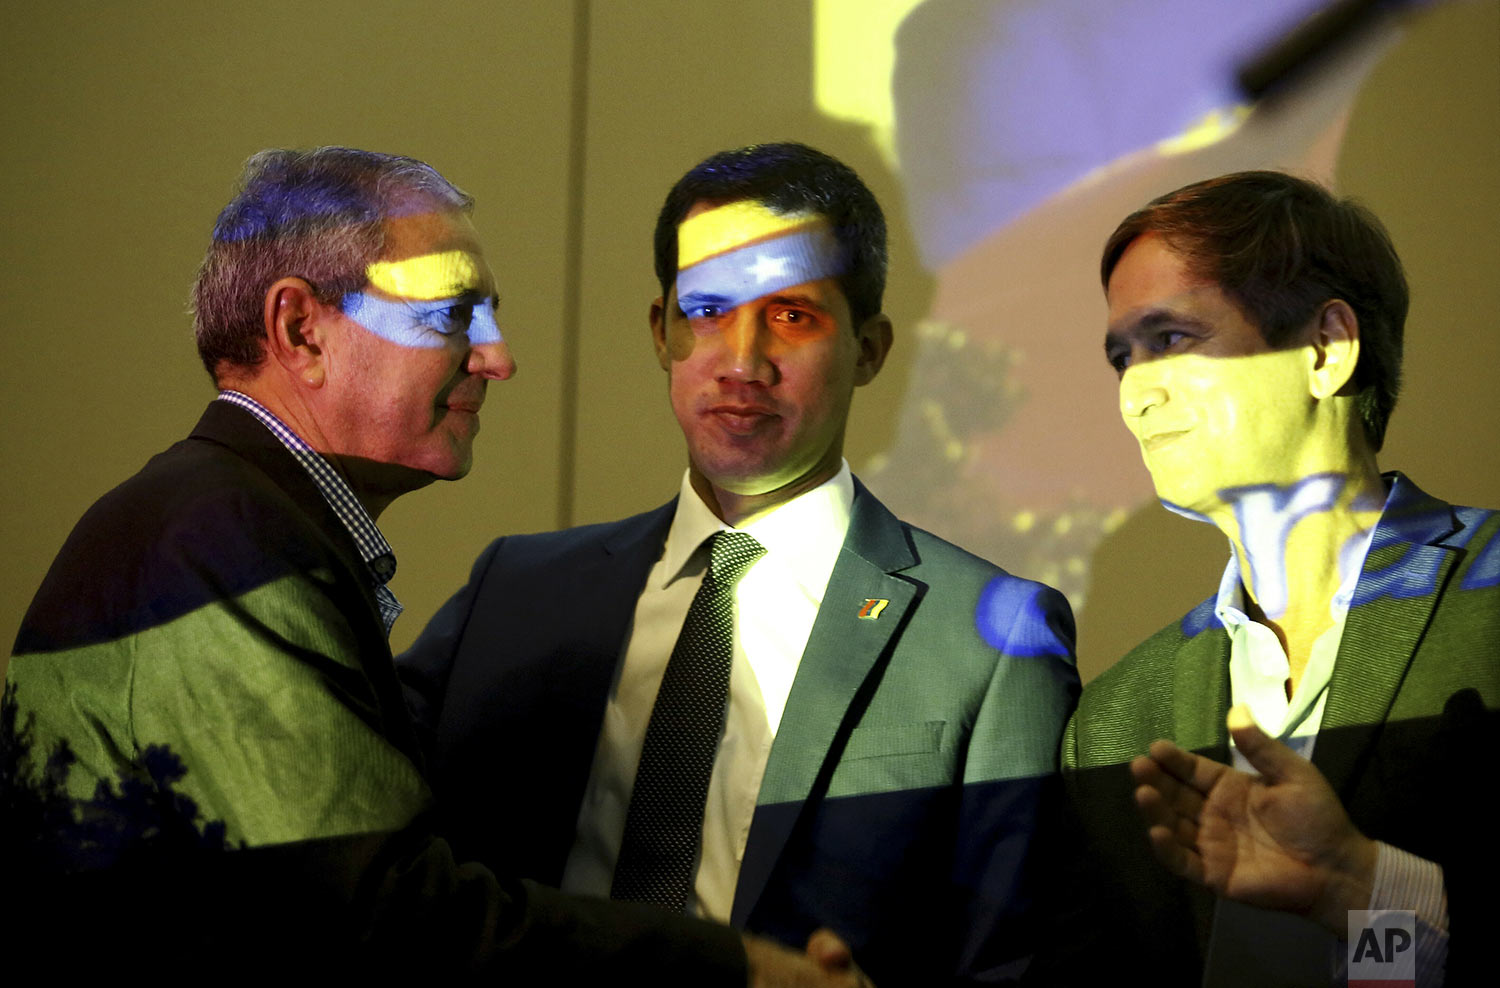 Venezuela's opposition leader and self-proclaimed interim president Juan Guaido, center, speaks with members of the opposition in Carabobo State, Manuel Barreto, left, and Lucio Herrera, prior a speech during a meeting with supporters, at a hotel in Valencia, Venezuela, June 7, 2019. The colors on their faces are the colors of Venezuelan flag projected by a data projector. (AP Photo/Juan Carlos Hernandez)